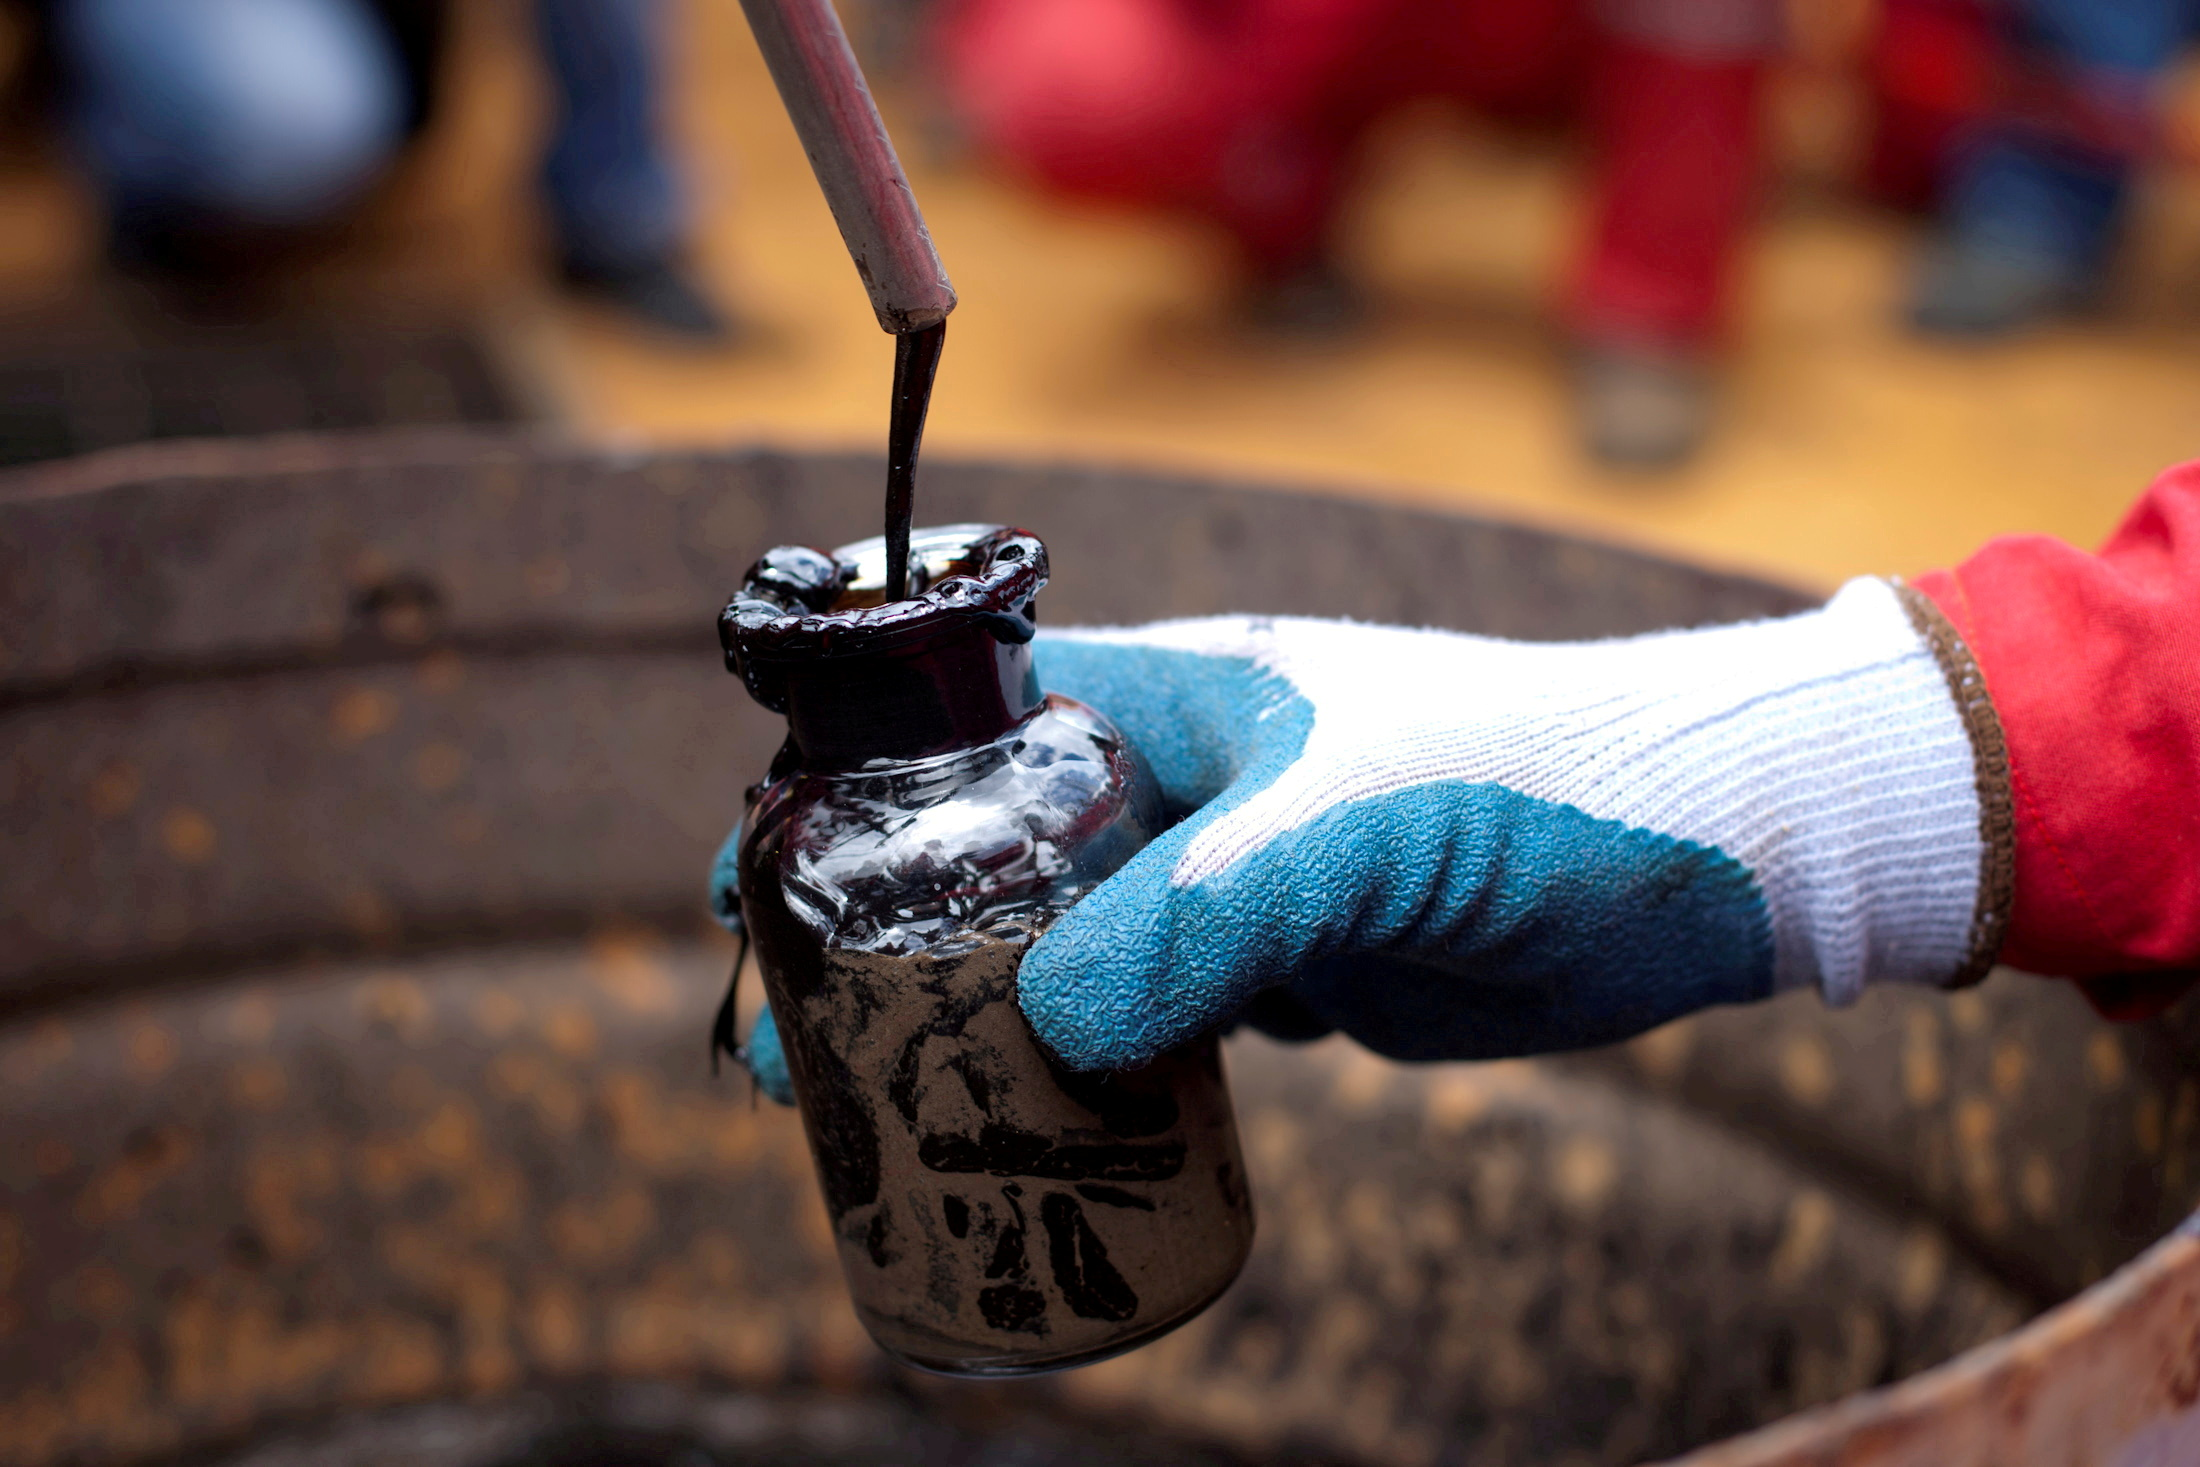 A worker collects a crude oil sample at an oil well operated by Venezuela's state oil company PDVSA in Morichal, Venezuela, July 28, 2011.  REUTERS/Carlos Garcia Rawlins/File Photo